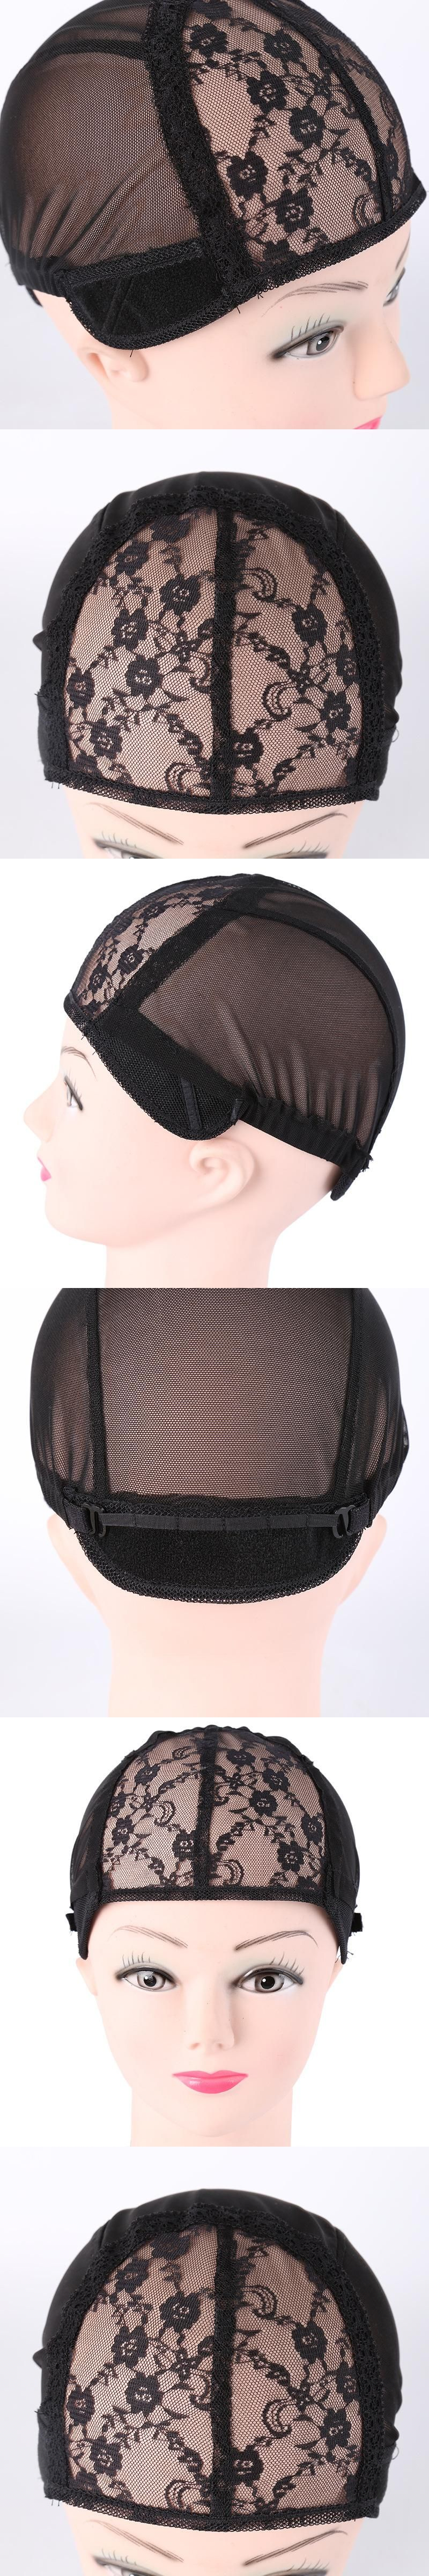 High Quality Lot Lace Wig Caps For Making Wigs And Hair Weaving